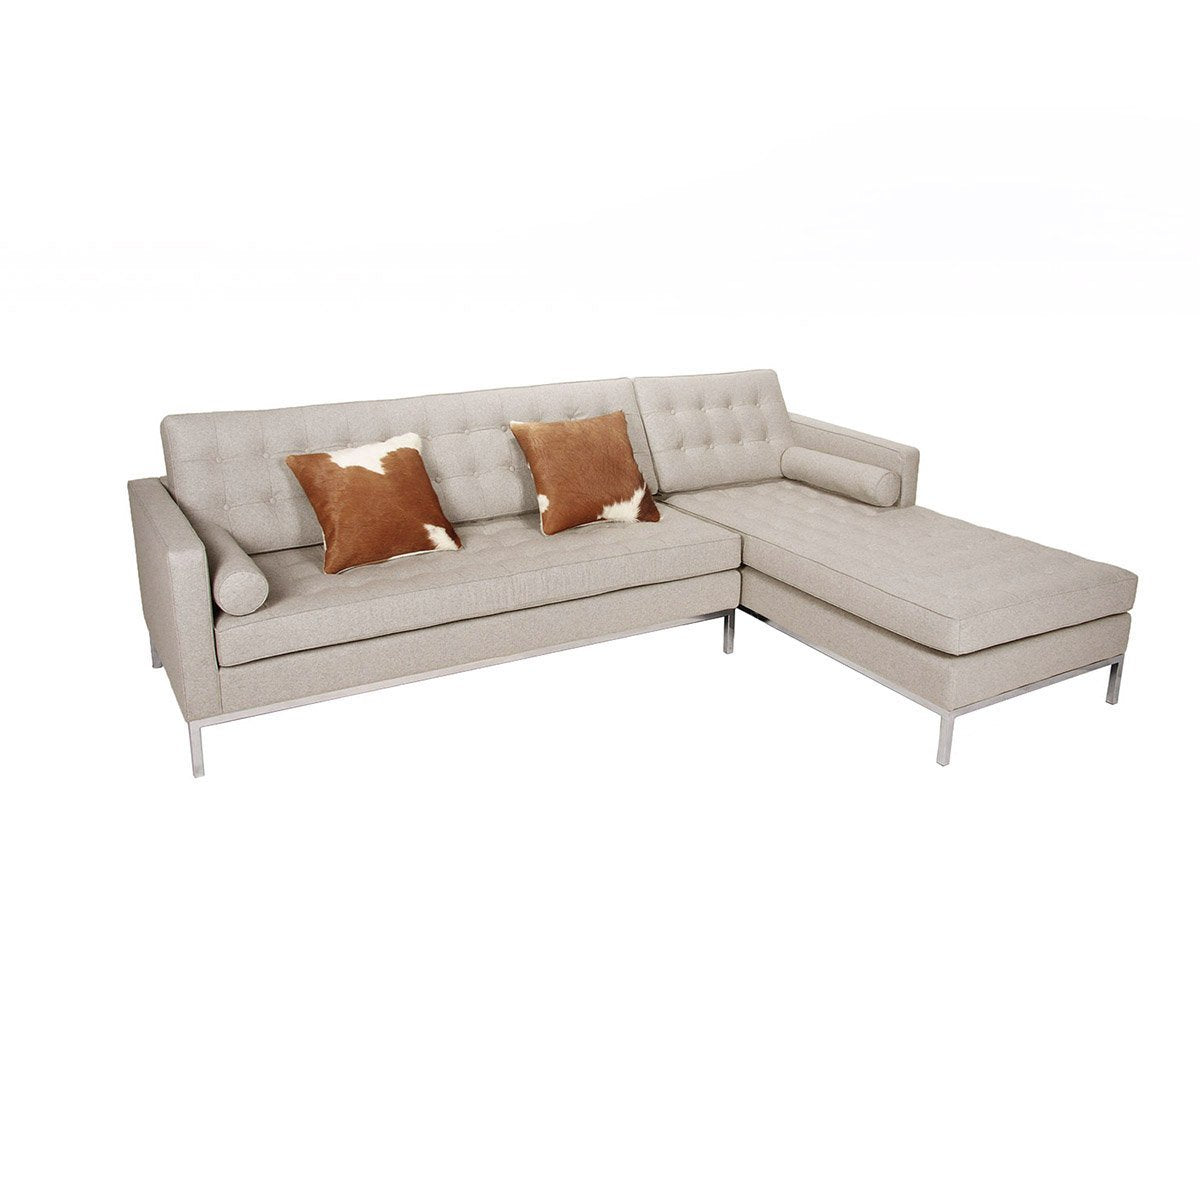 [FB2688WHEAT] Hullen Sectional